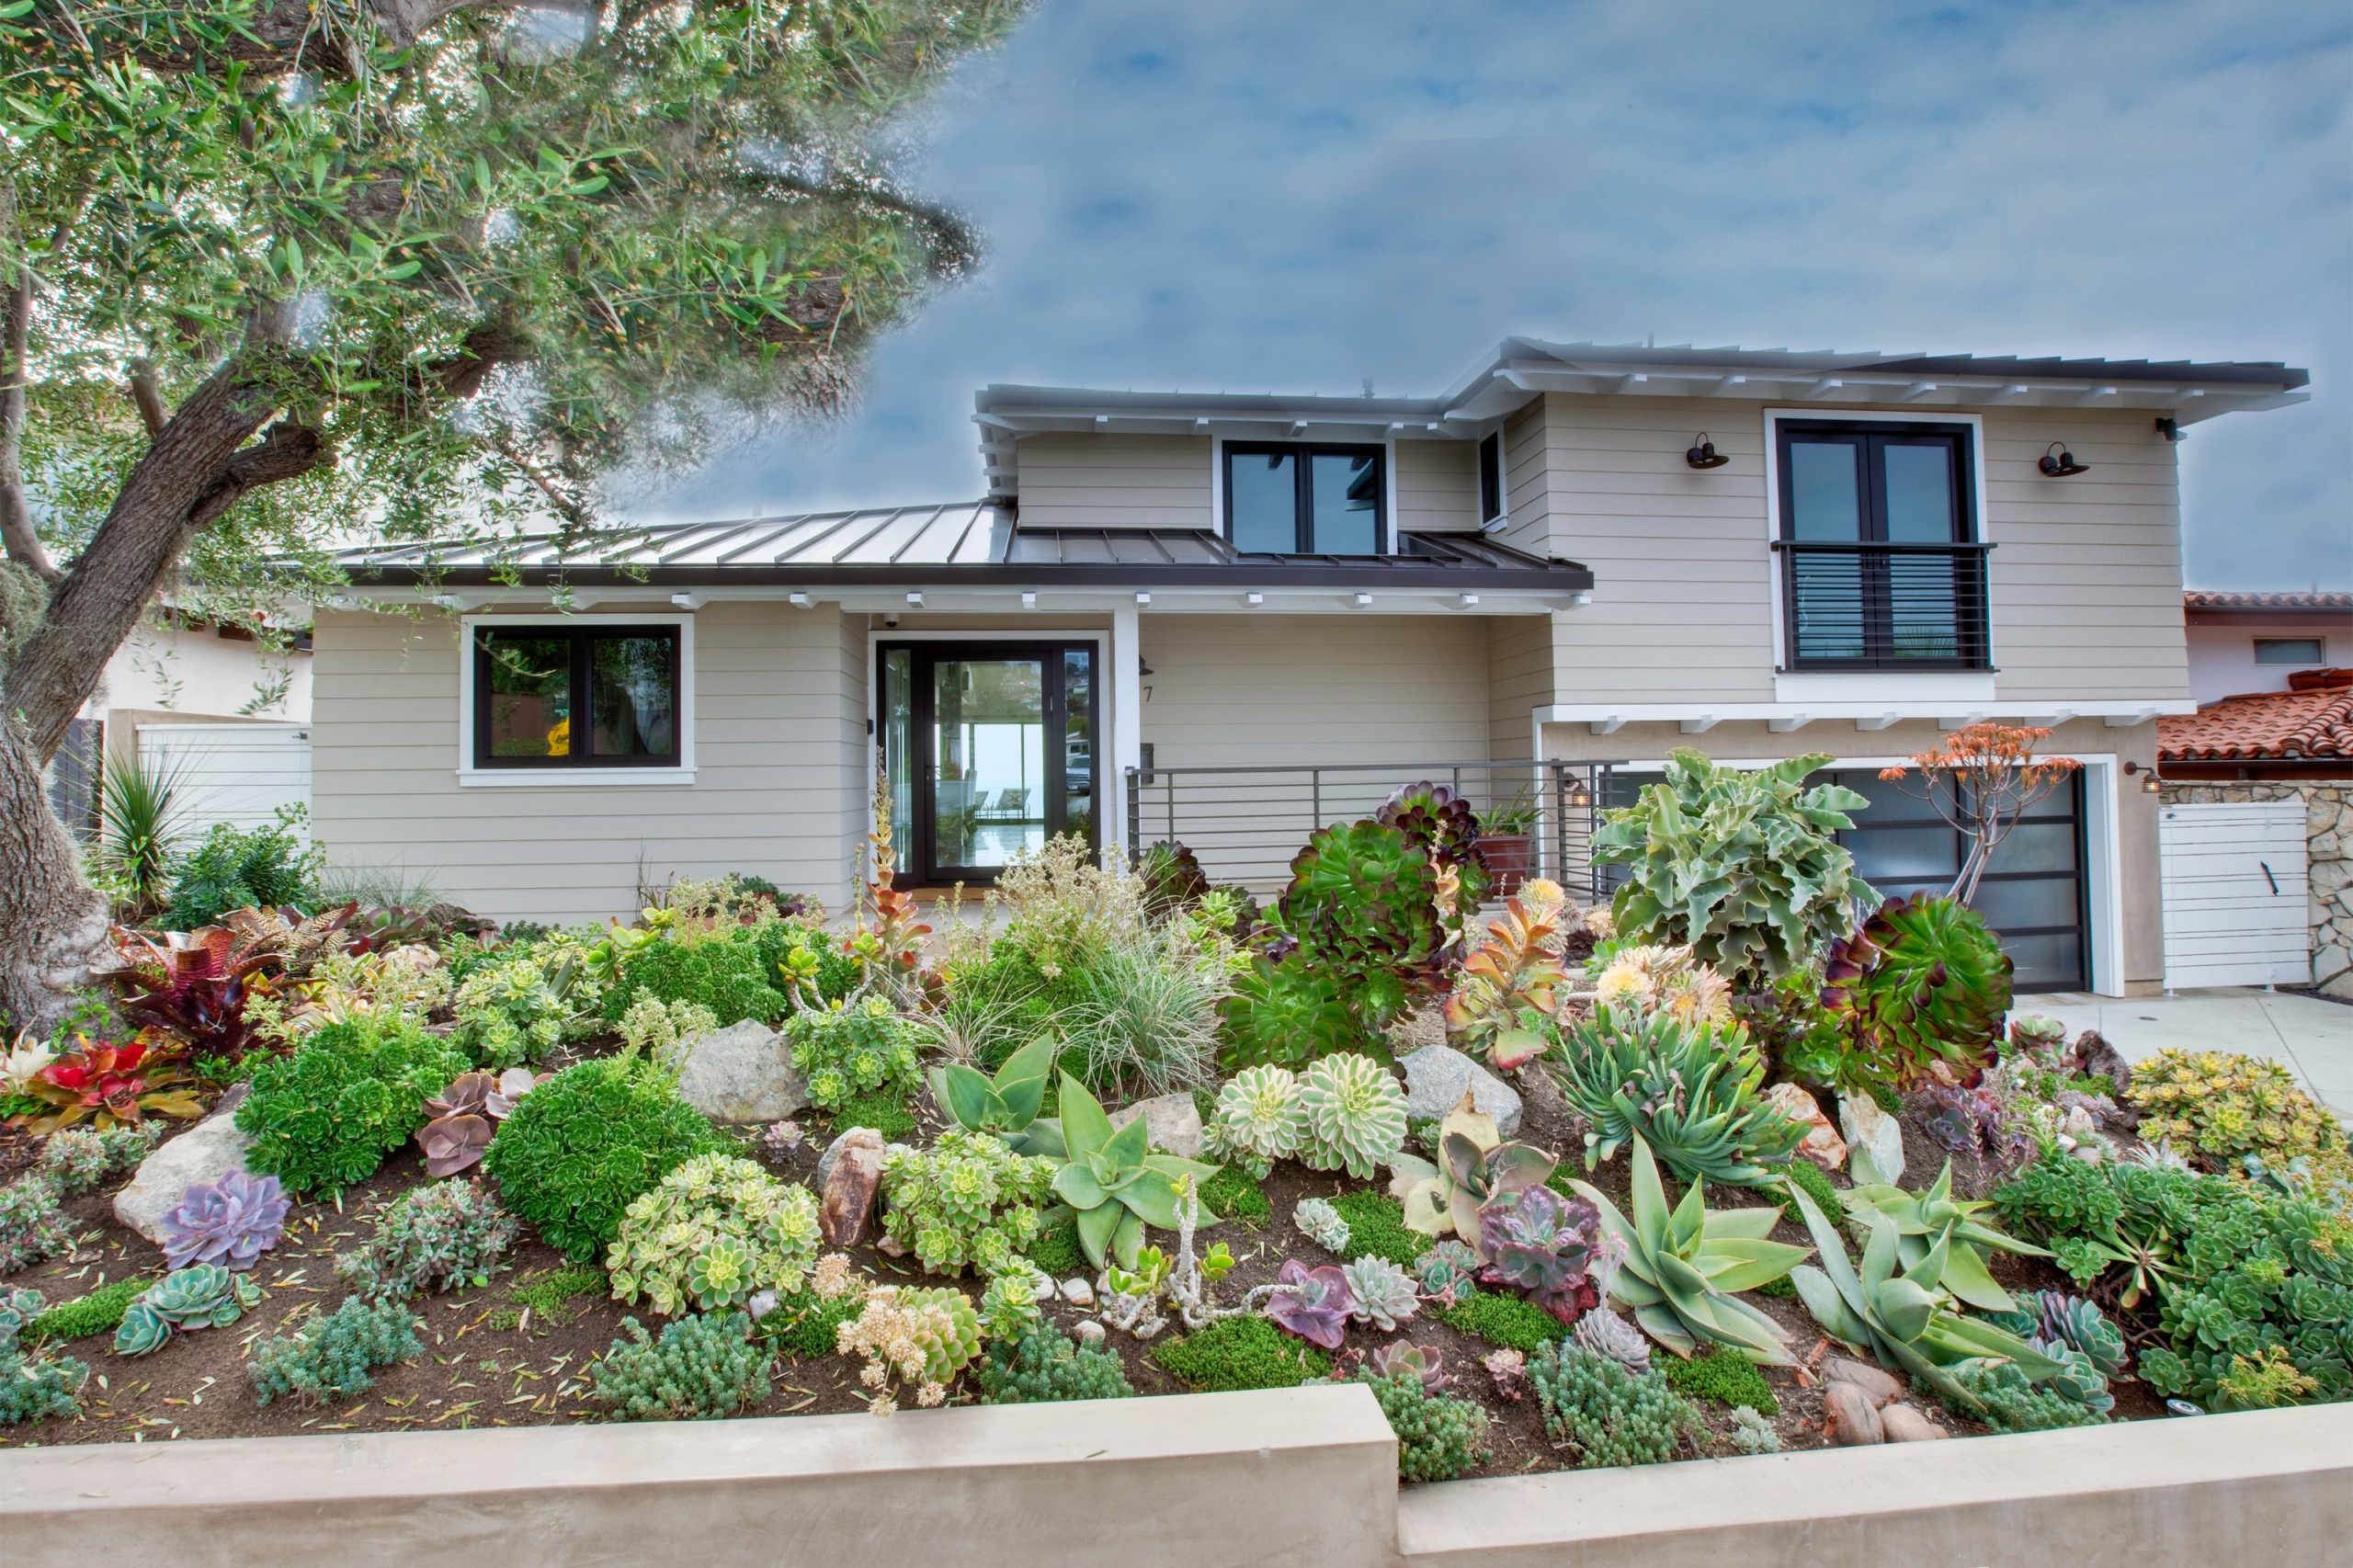 Drought-tolerant plants in a front yard